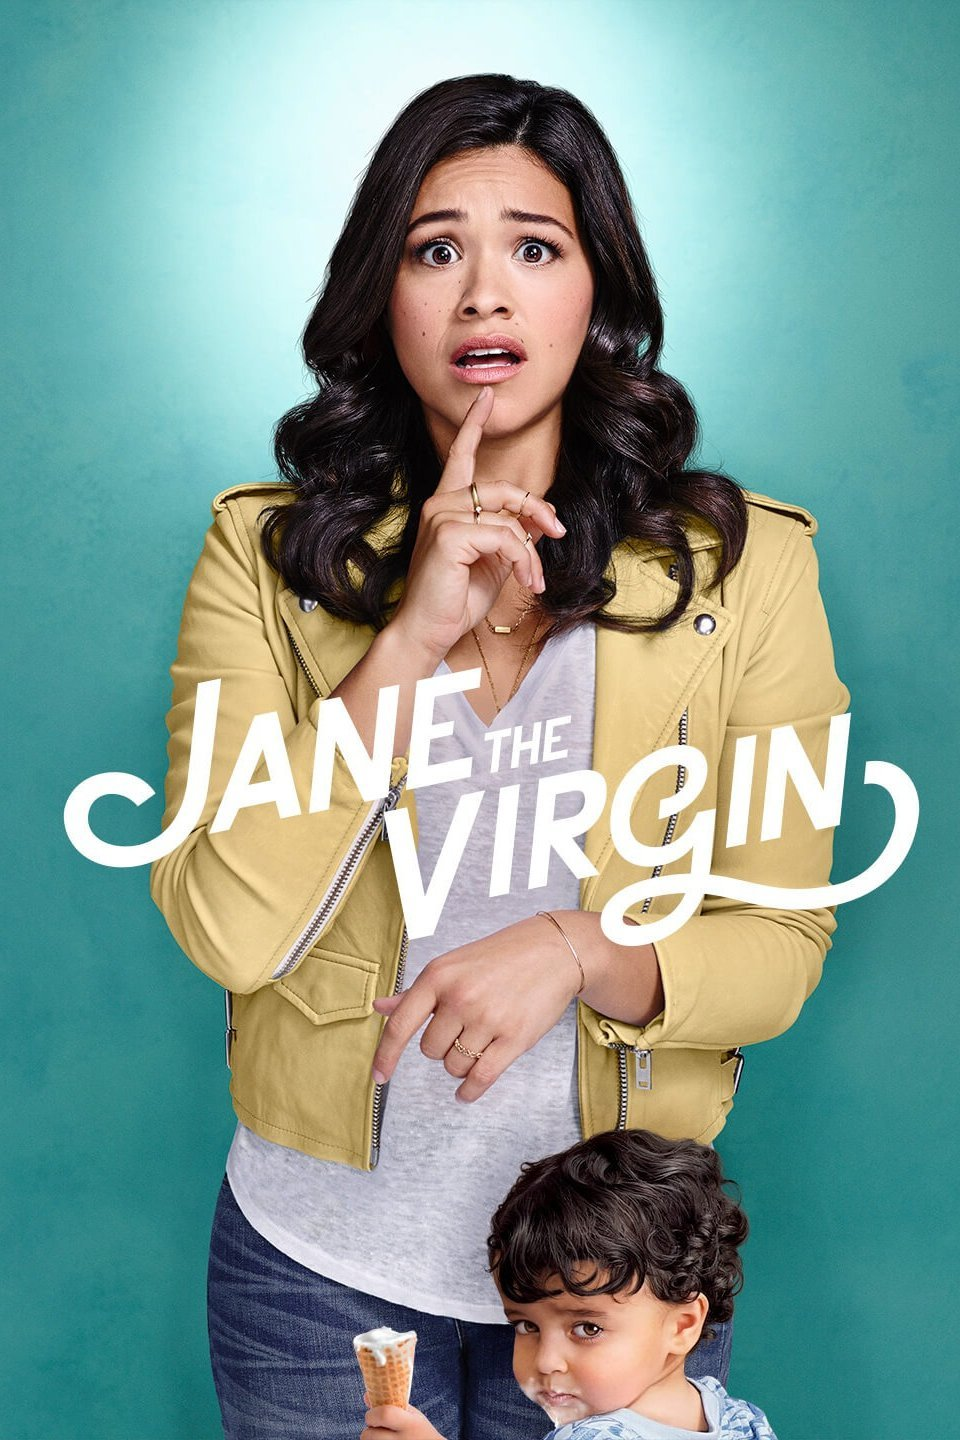 Jane the Virgin Tv Series Download Season 3 Complete 480p HDTV Micromkv